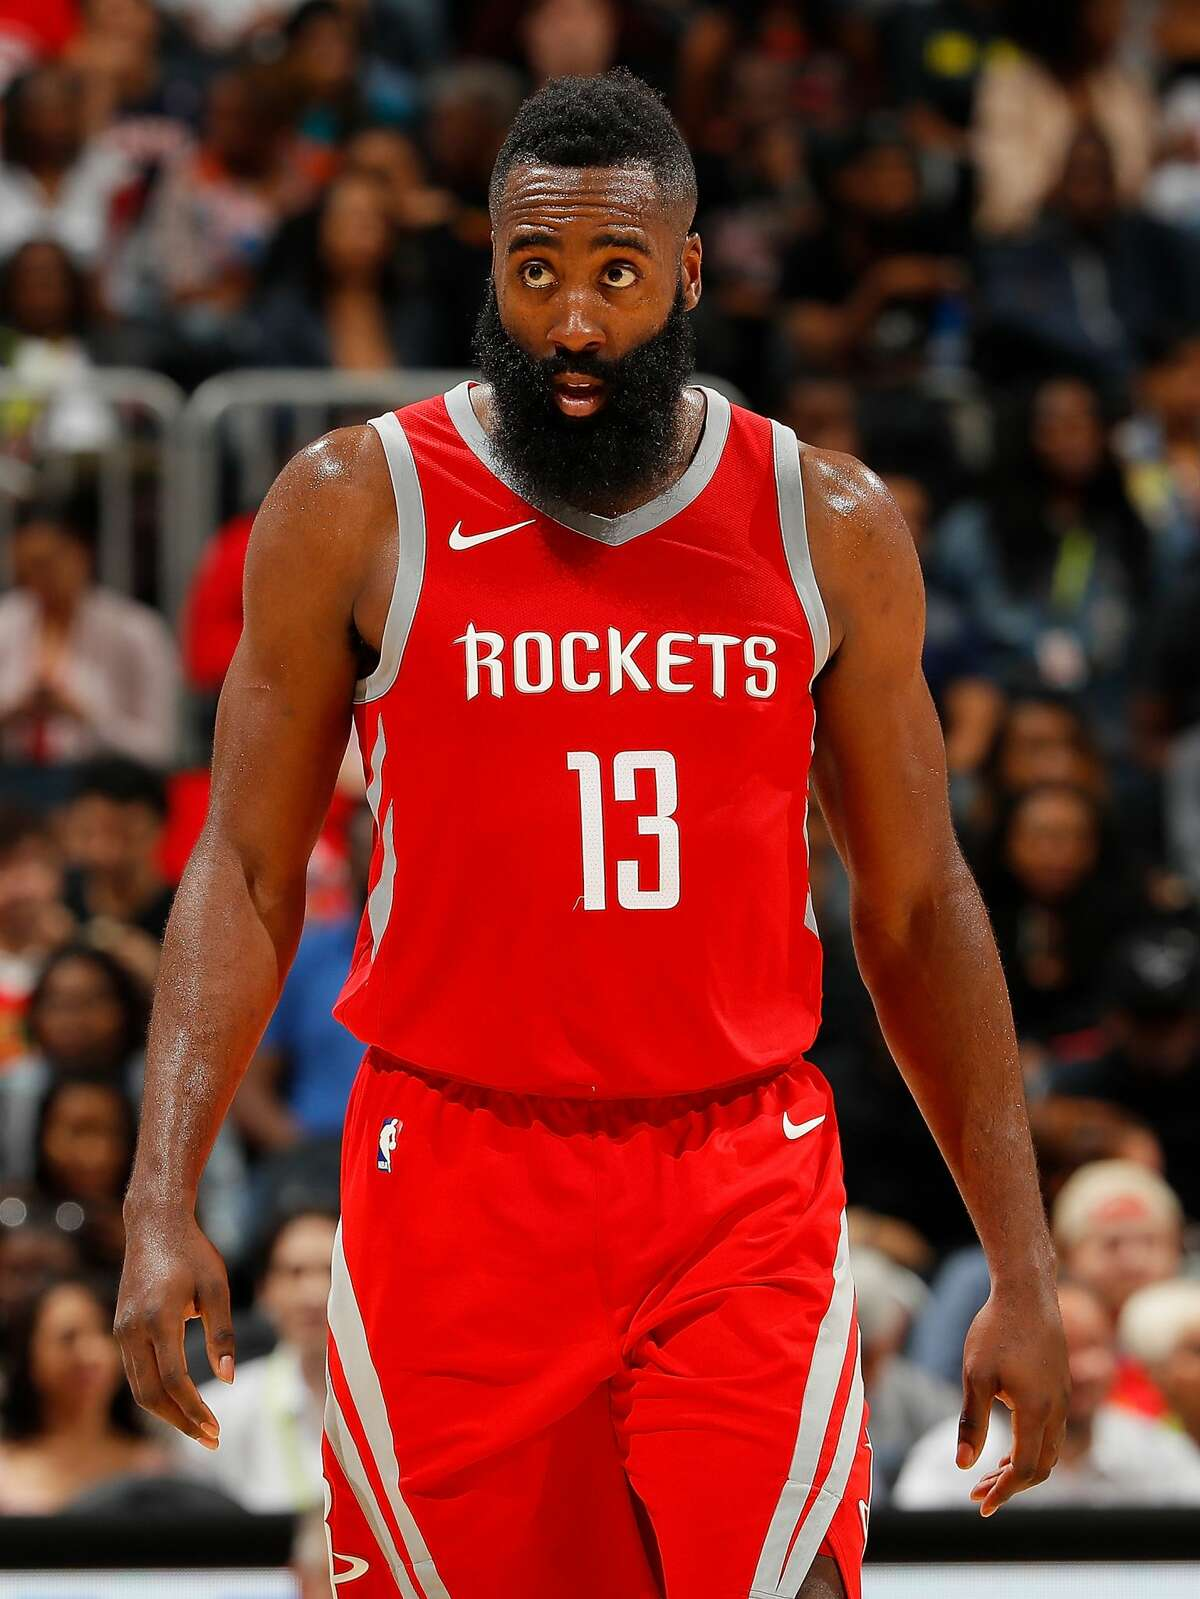 ATLANTA, GA - NOVEMBER 03: James Harden #13 of the Houston Rockets looks on during the game against the Atlanta Hawks at Philips Arena on November 3, 2017 in Atlanta, Georgia. NOTE TO USER: User expressly acknowledges and agrees that, by downloading and or using this photograph, User is consenting to the terms and conditions of the Getty Images License Agreement. (Photo by Kevin C. Cox/Getty Images)